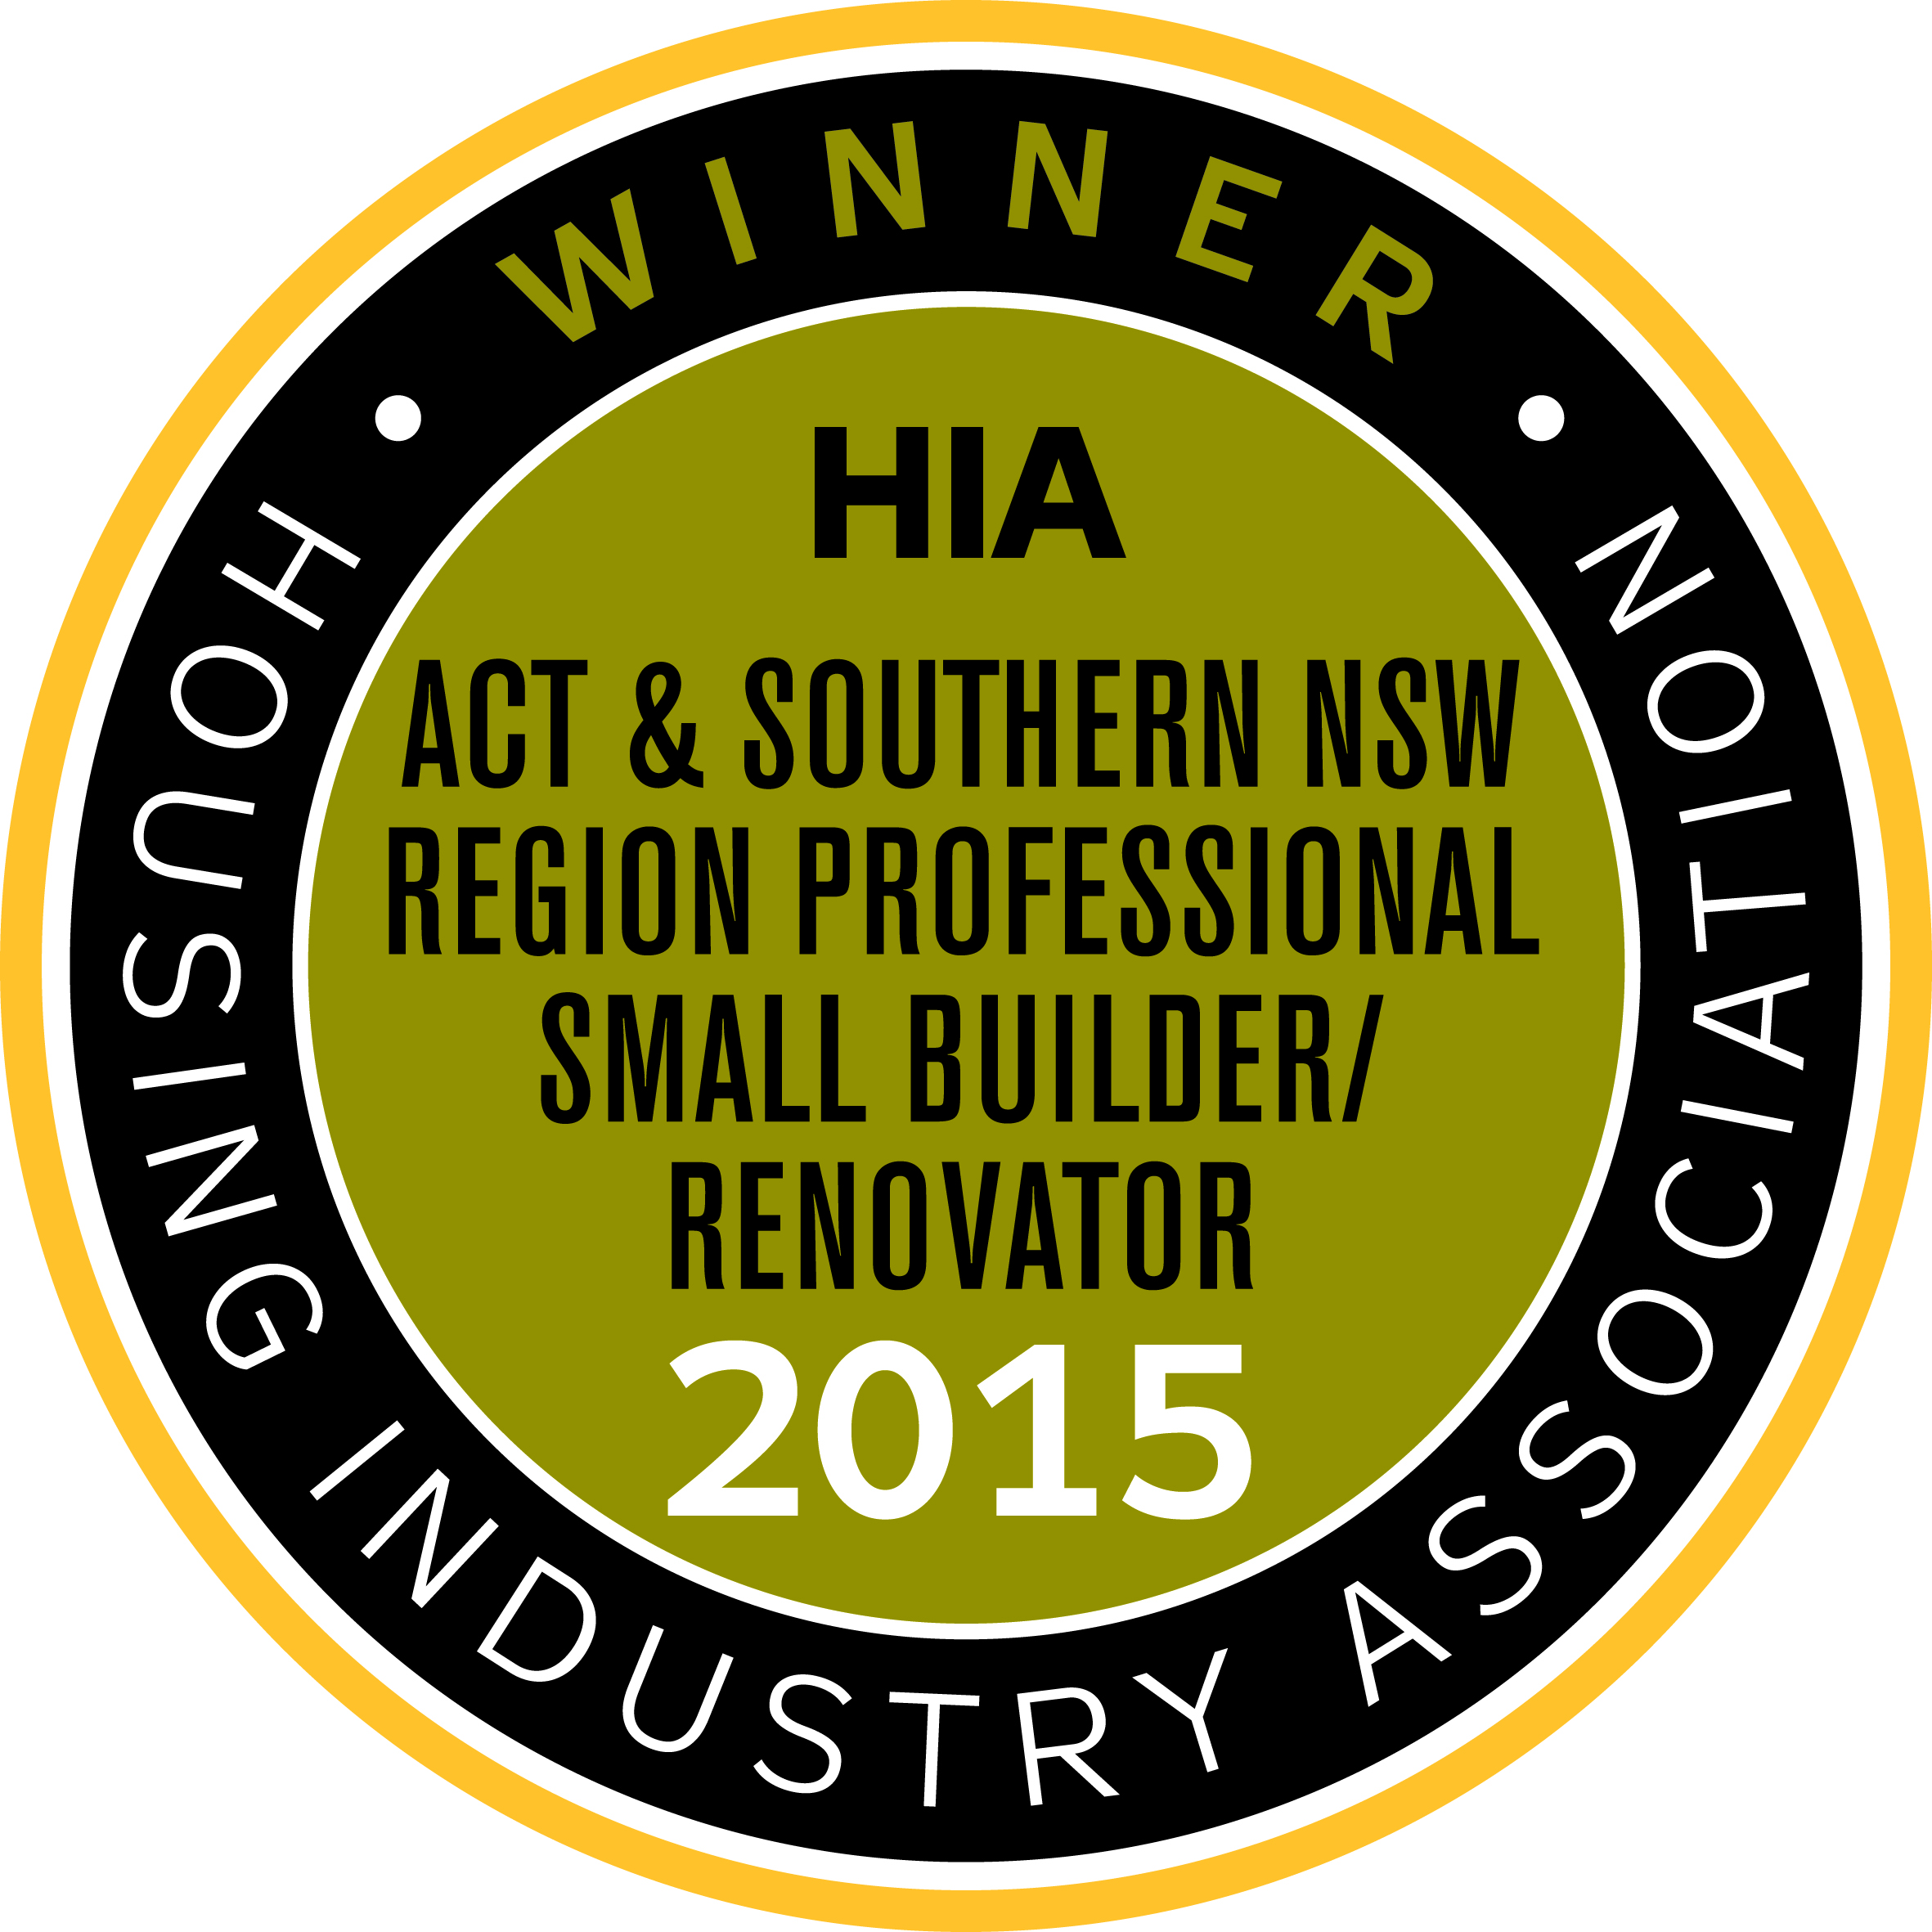 HIA ACTSNSW SMALL 2015 winner 1